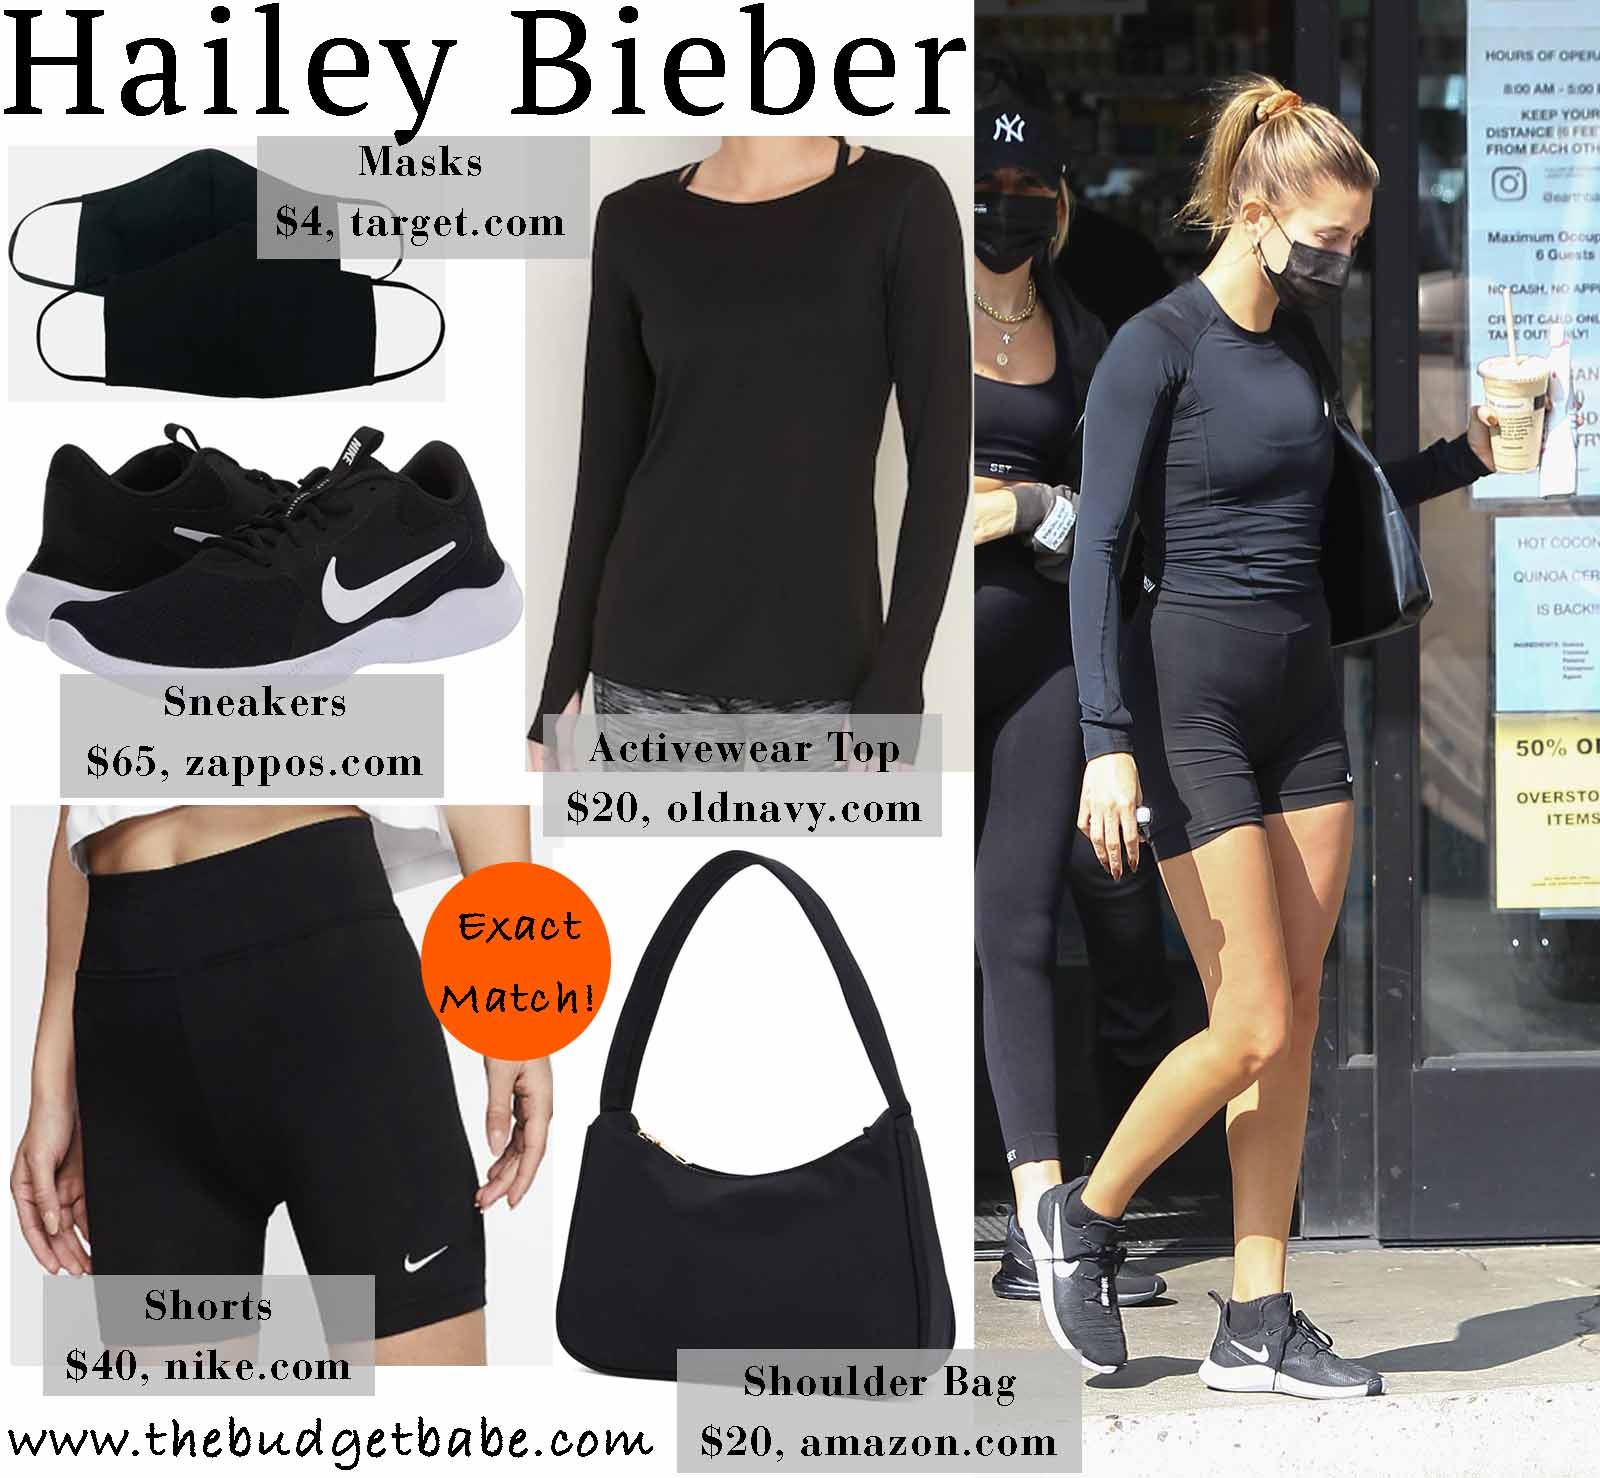 Hailey is chic in Nike.